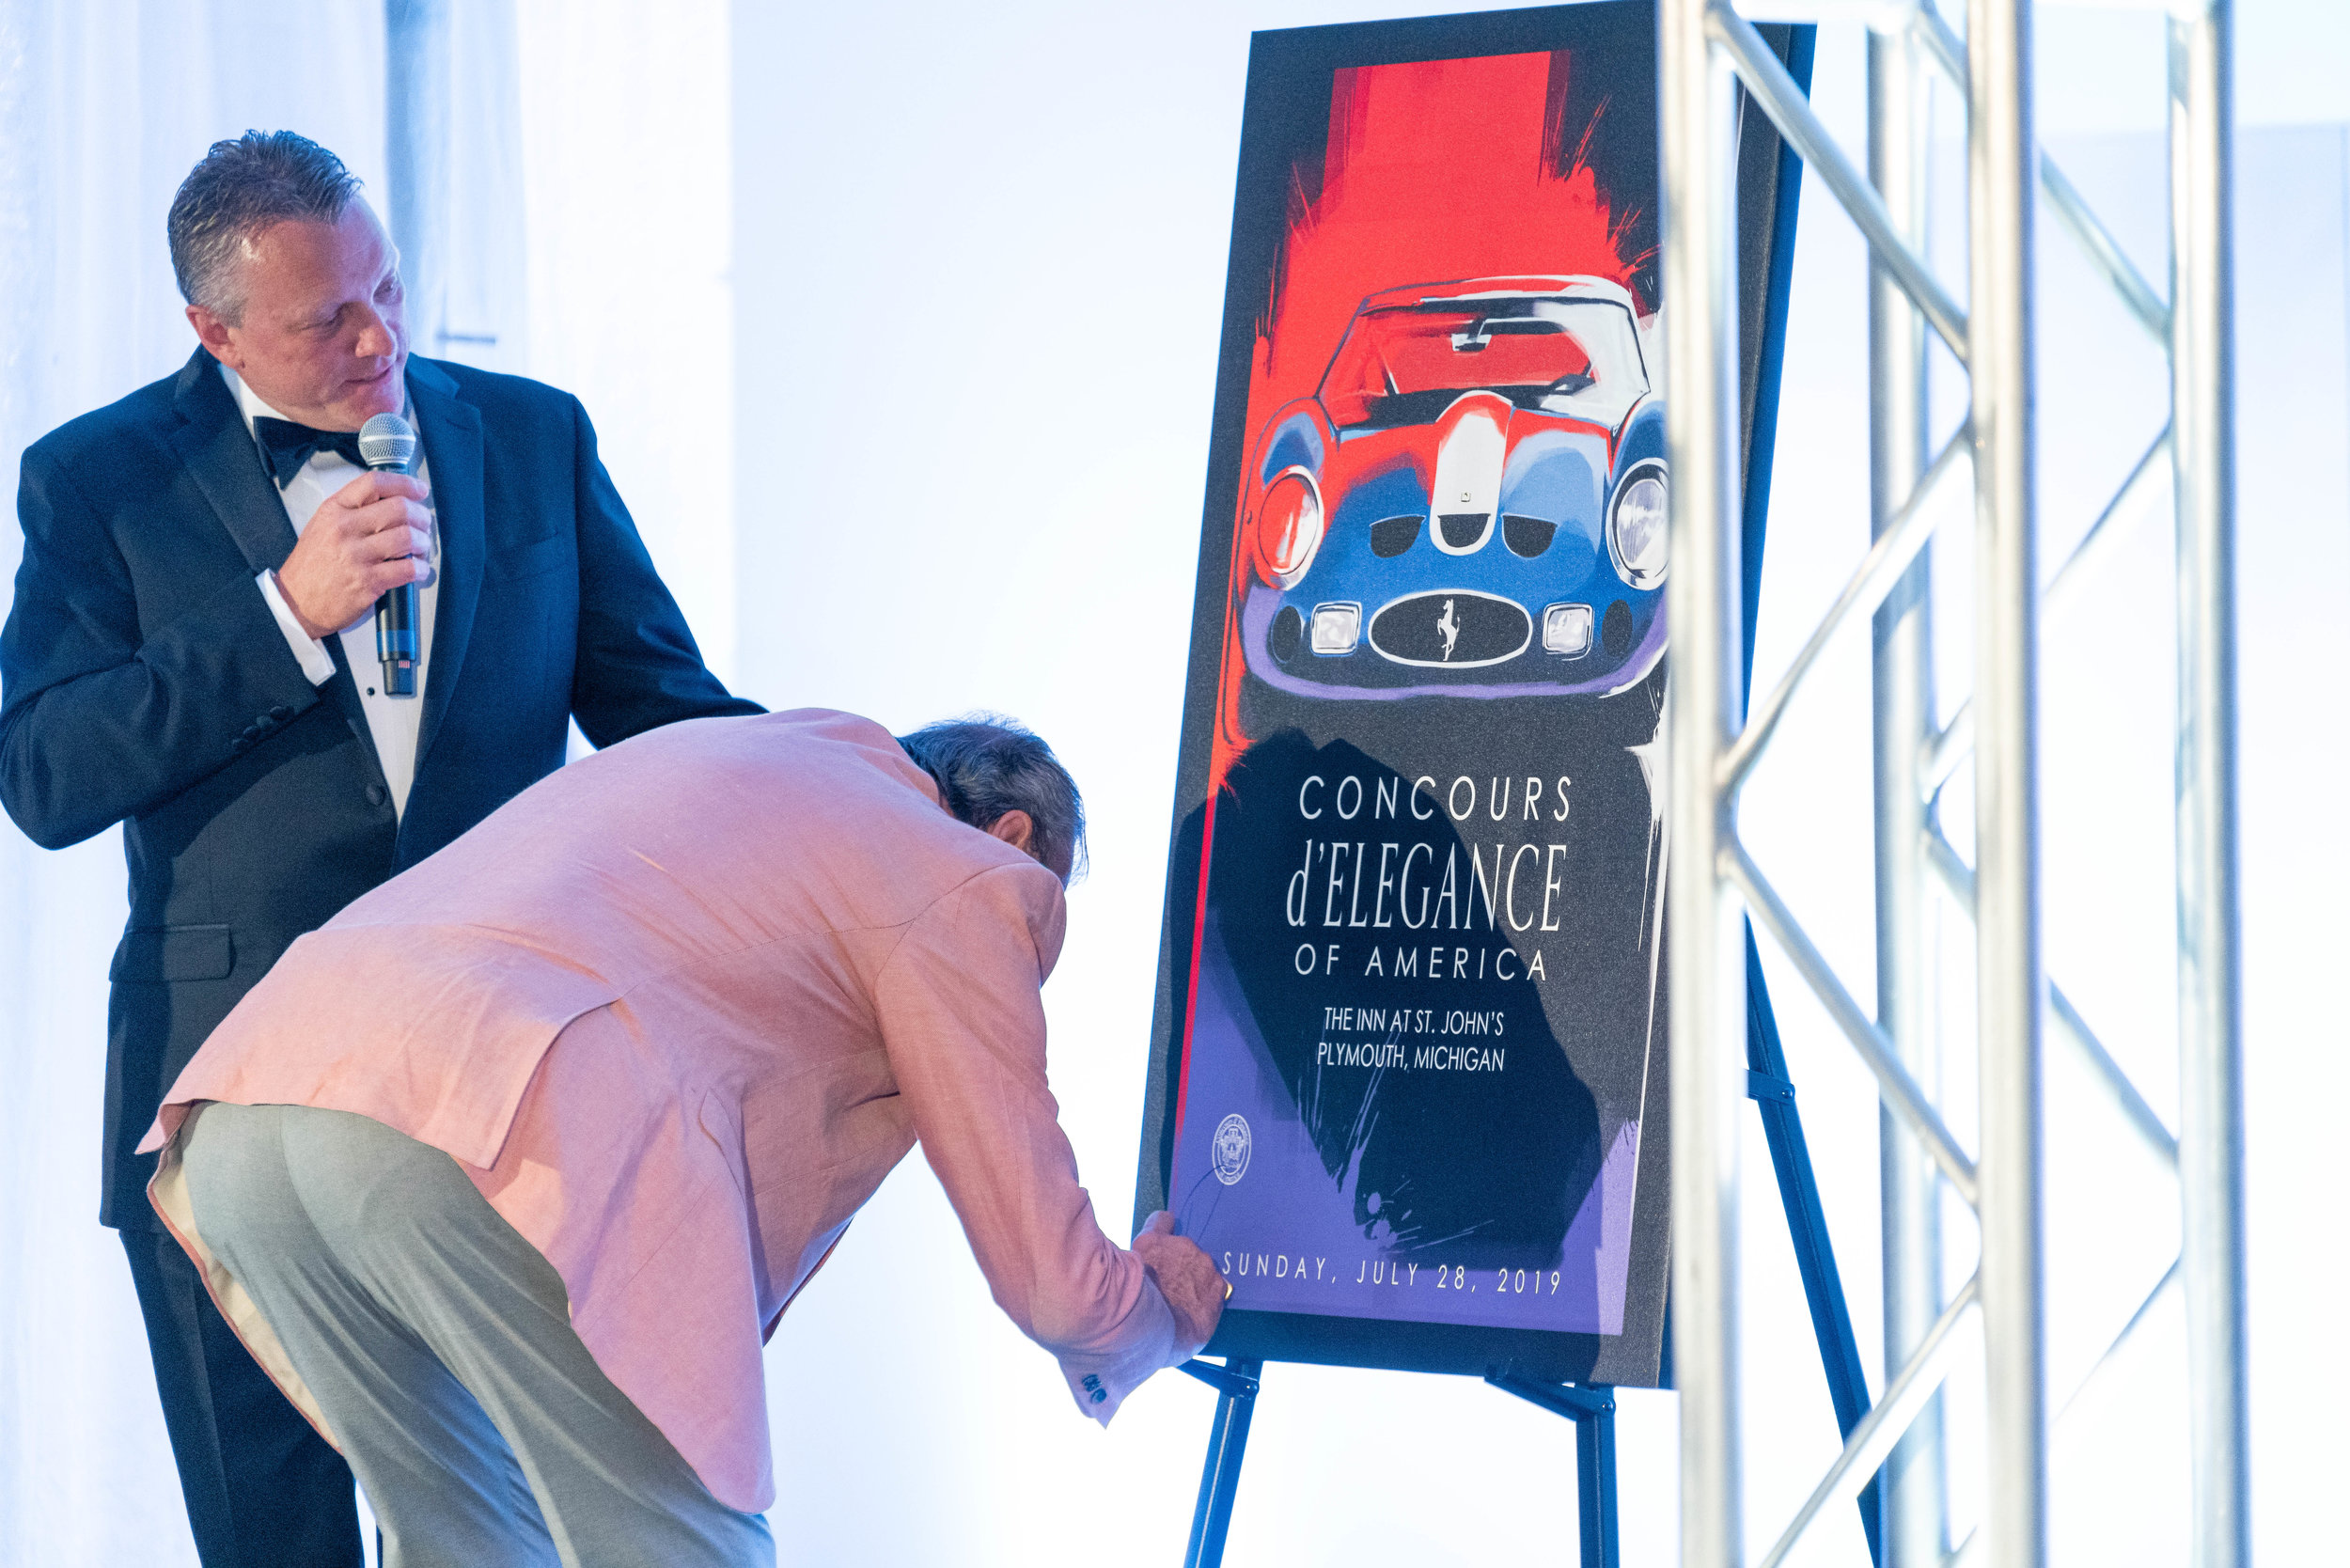 Ex-Formula 1 Race Car Driver and Commentator David Hobbs signs the Live Auction art piece by CCS student, Fabrizio Orsidepaula.